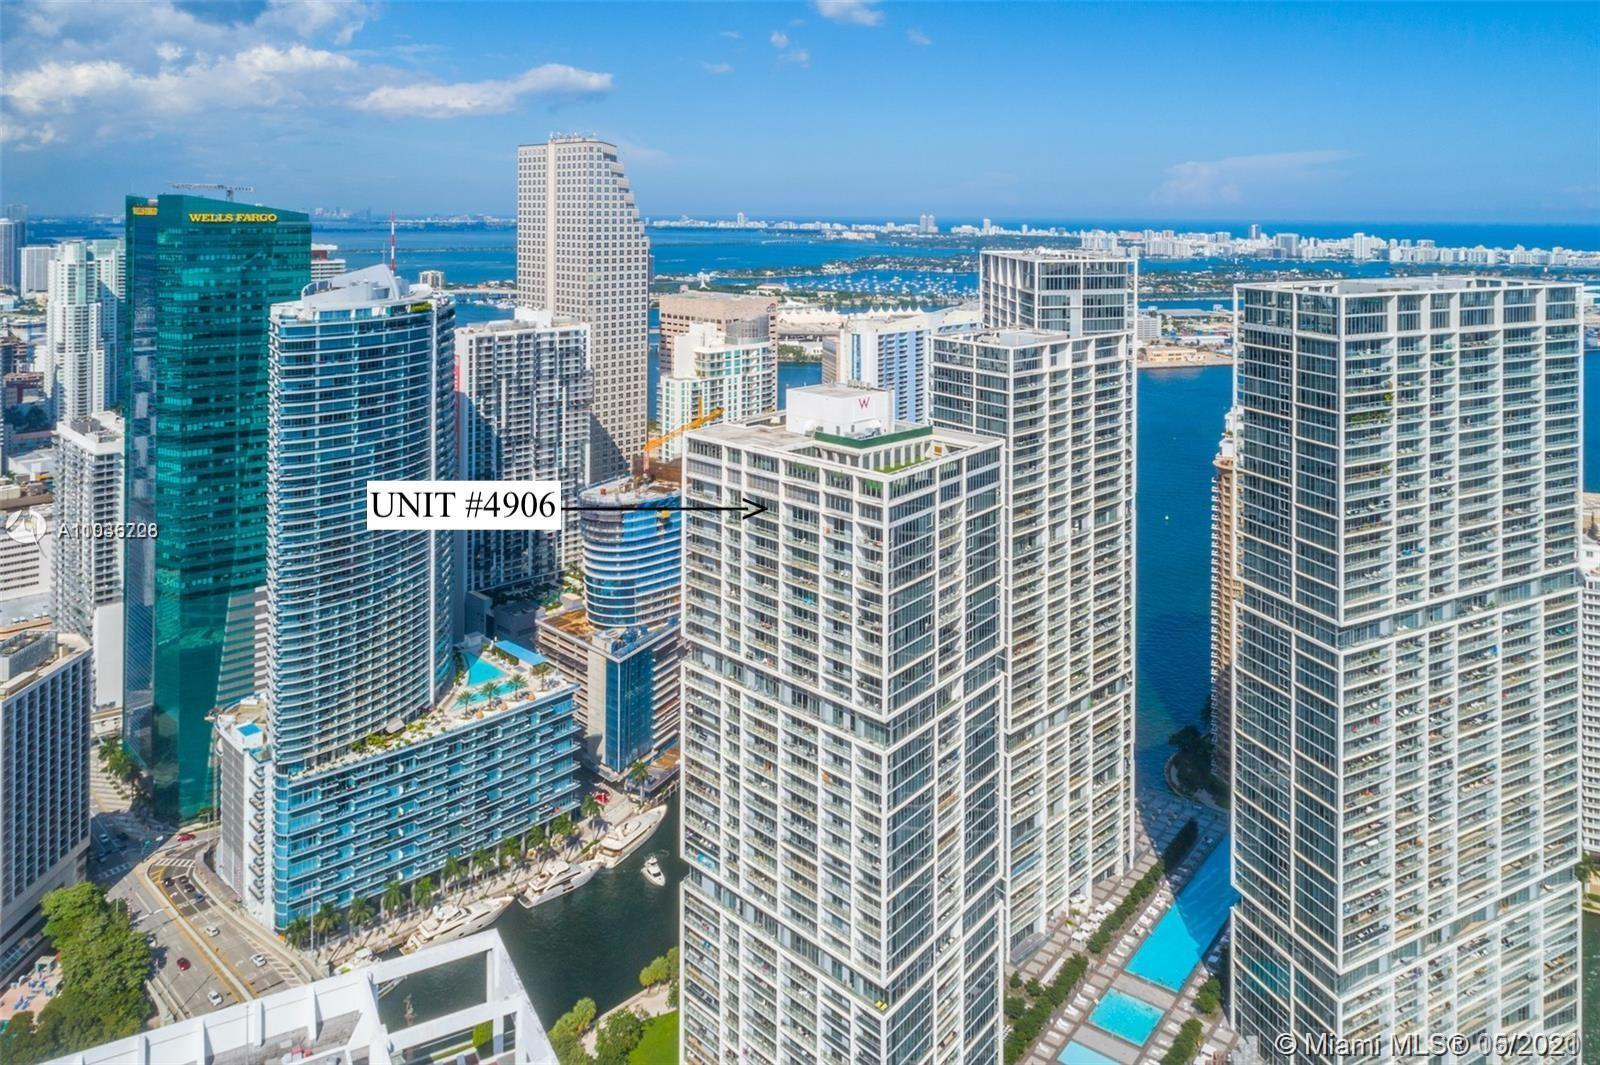 PENTHOUSE 49th Floor 1 Bedroom 1 Bath * AIRBNB/Short-Term Rental Allowed * 842 sqft Unit.